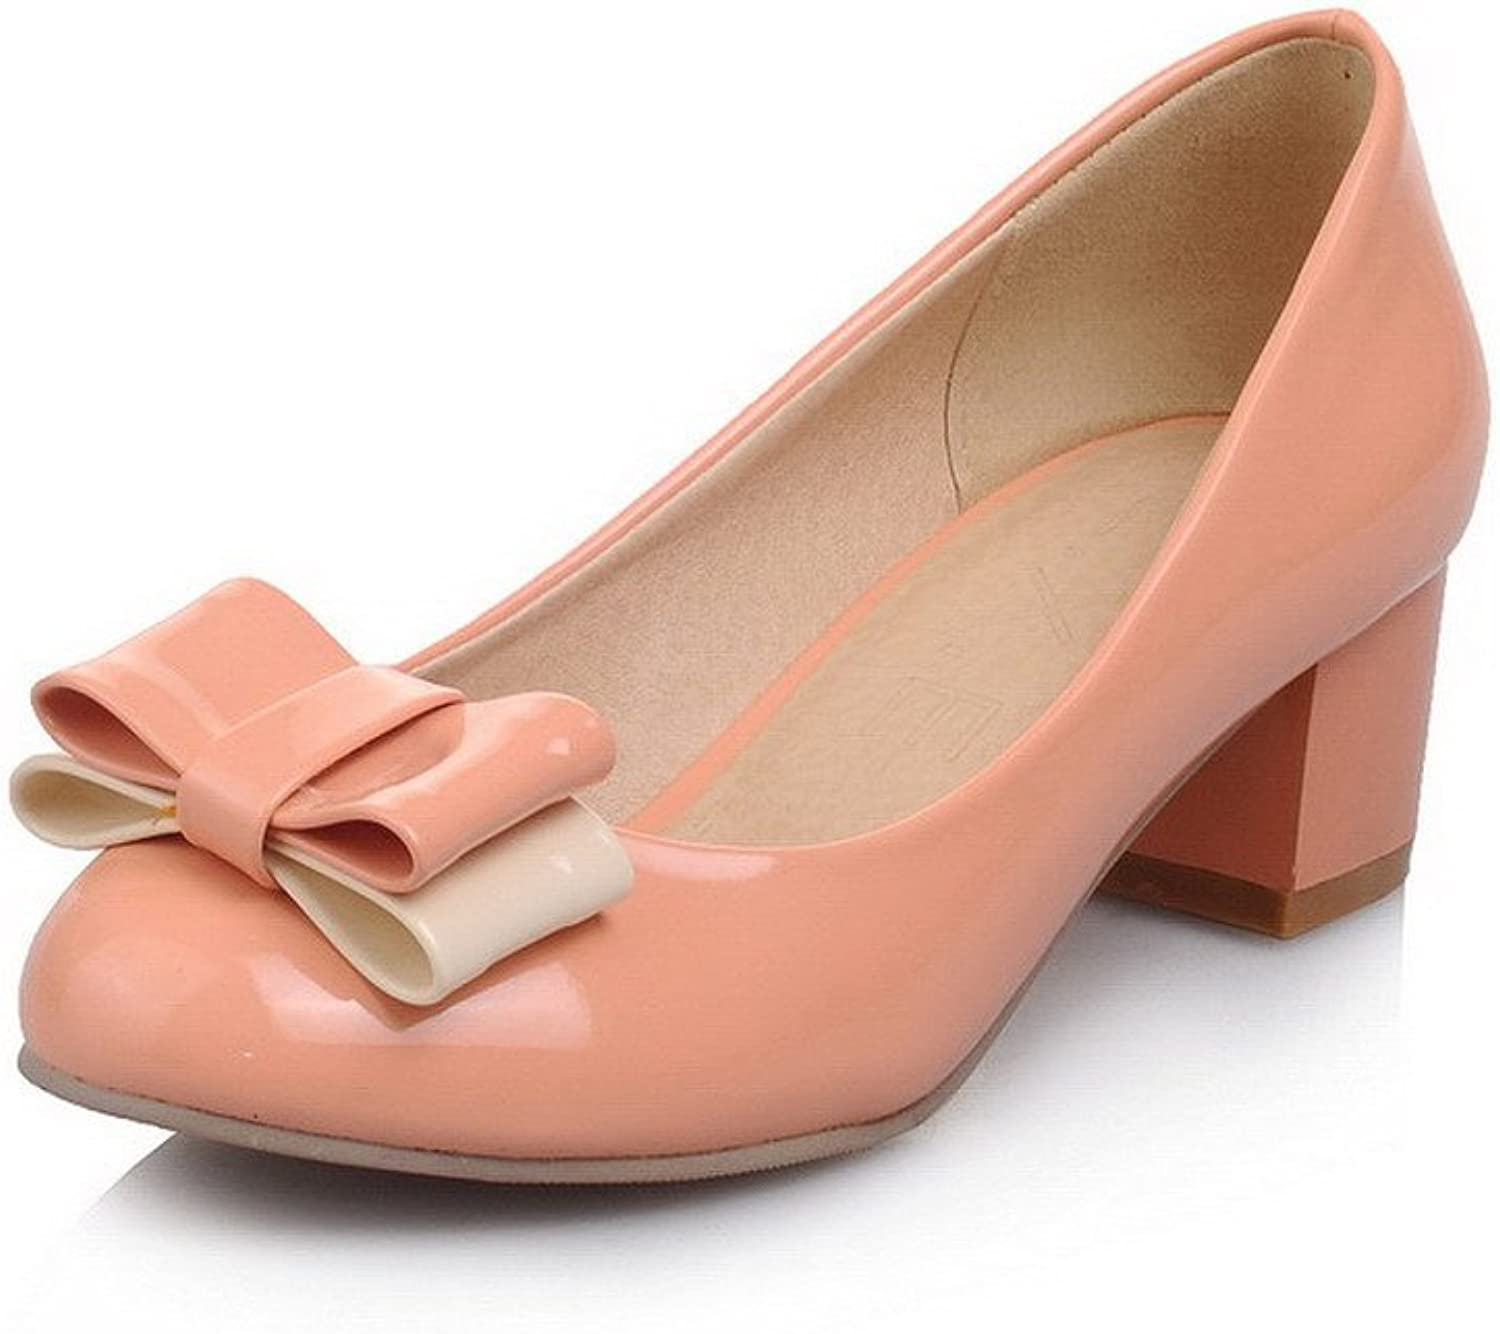 AllhqFashion Women's Patent Leather Pull-on Round Closed Toe Kitten-Heels Solid Pumps-shoes